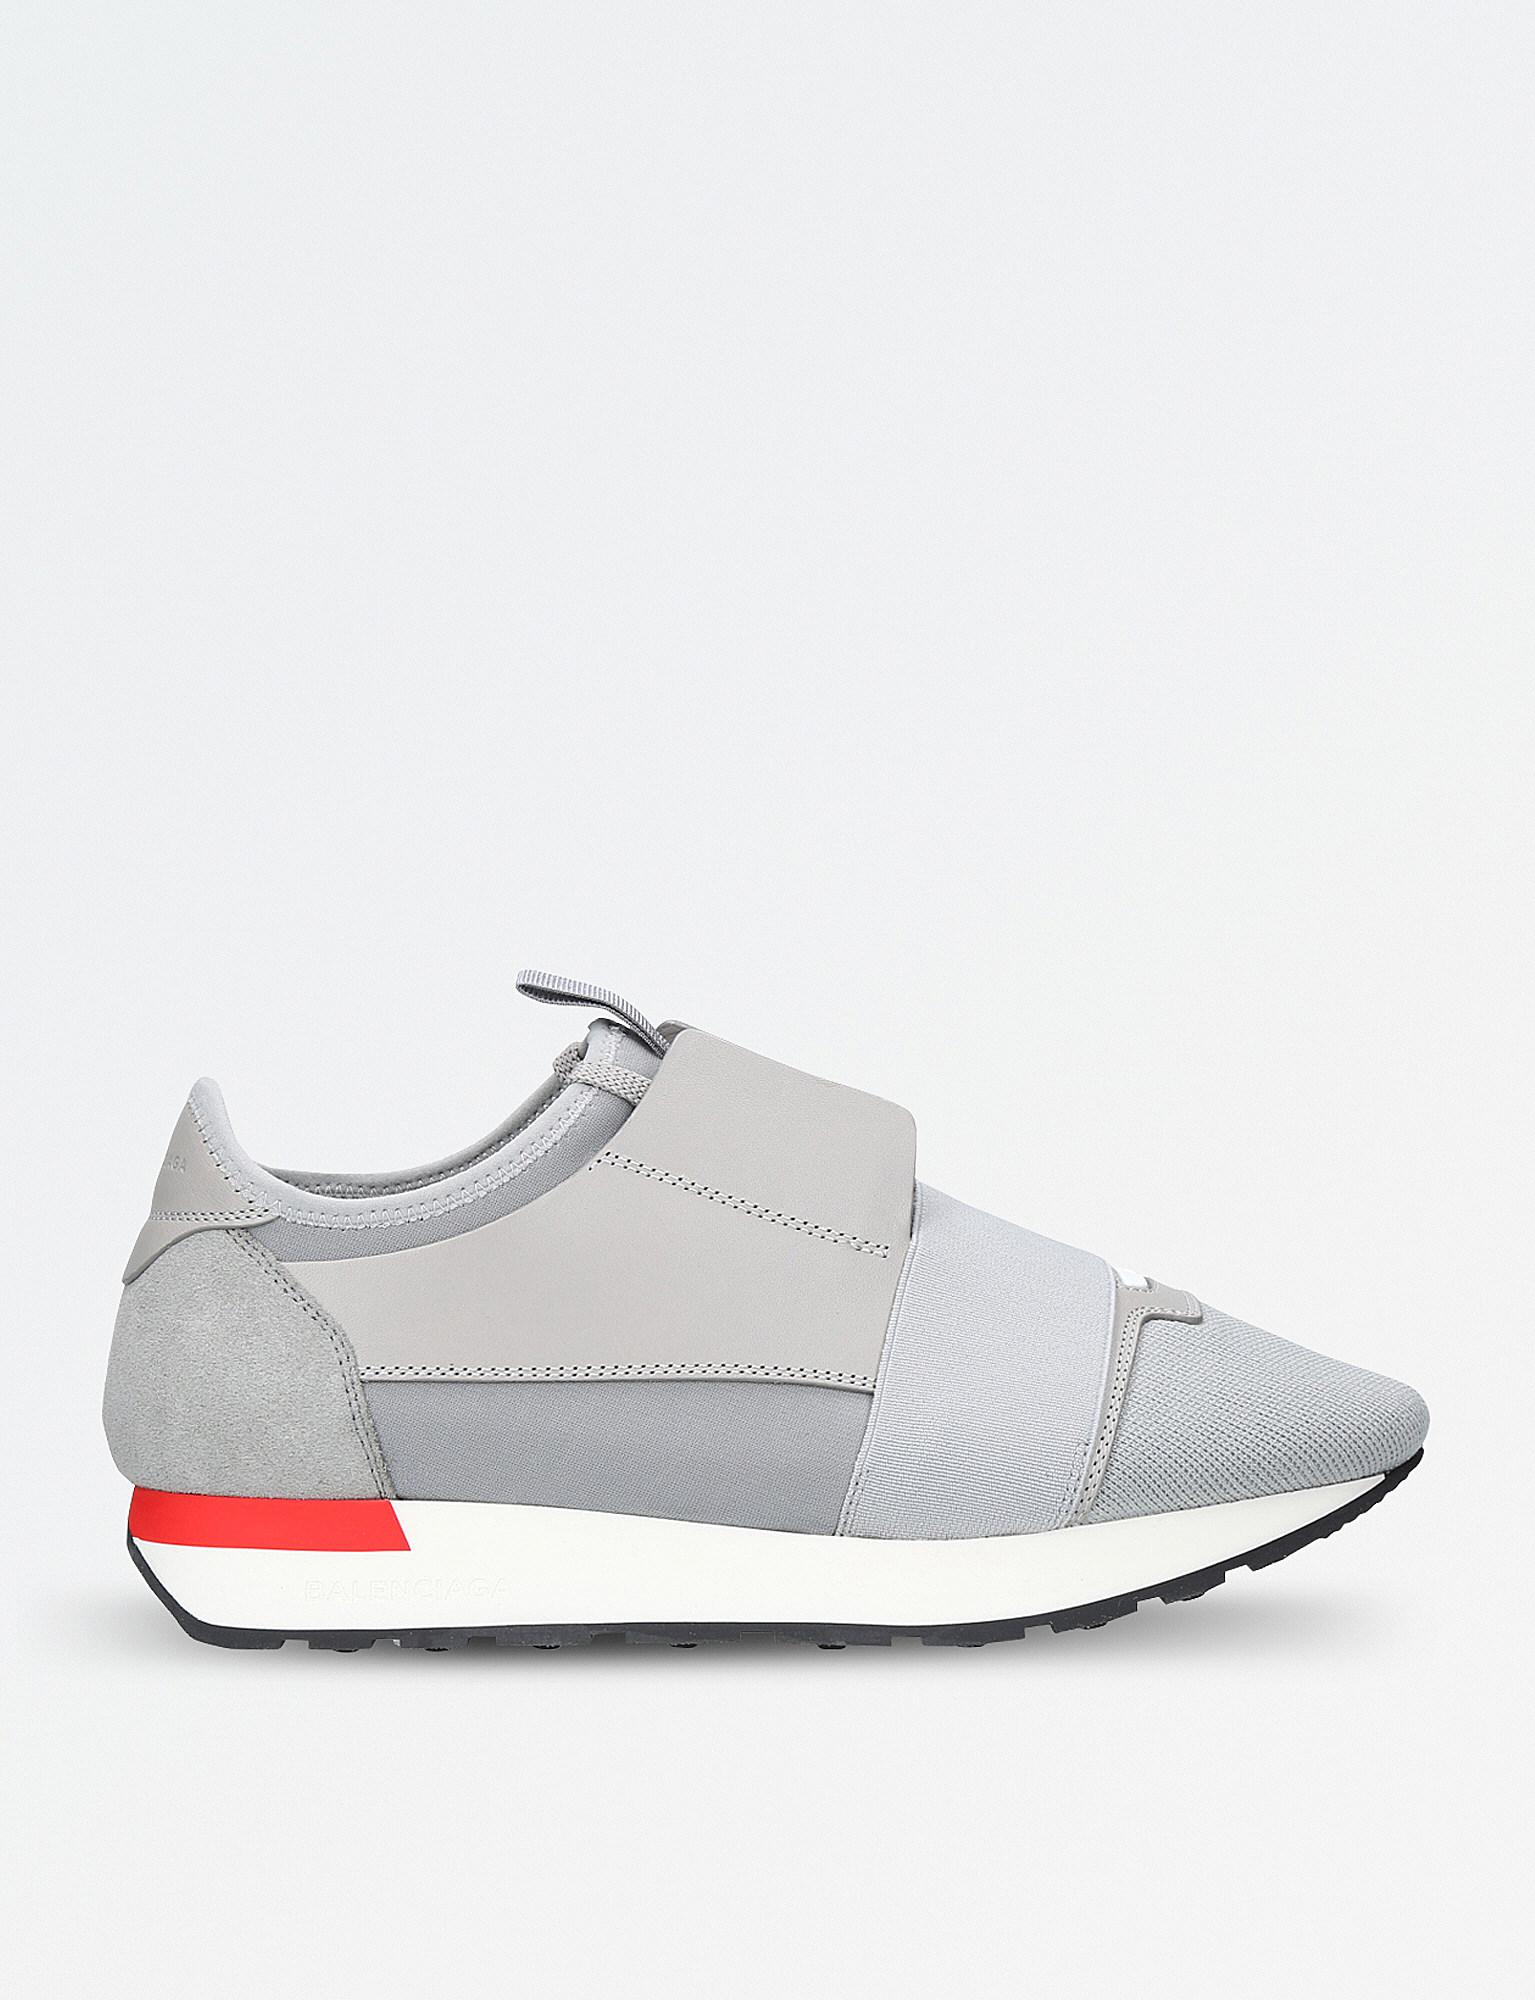 970d26015955 Lyst - Balenciaga Race Runners Leather And Mesh Trainers in Gray for Men